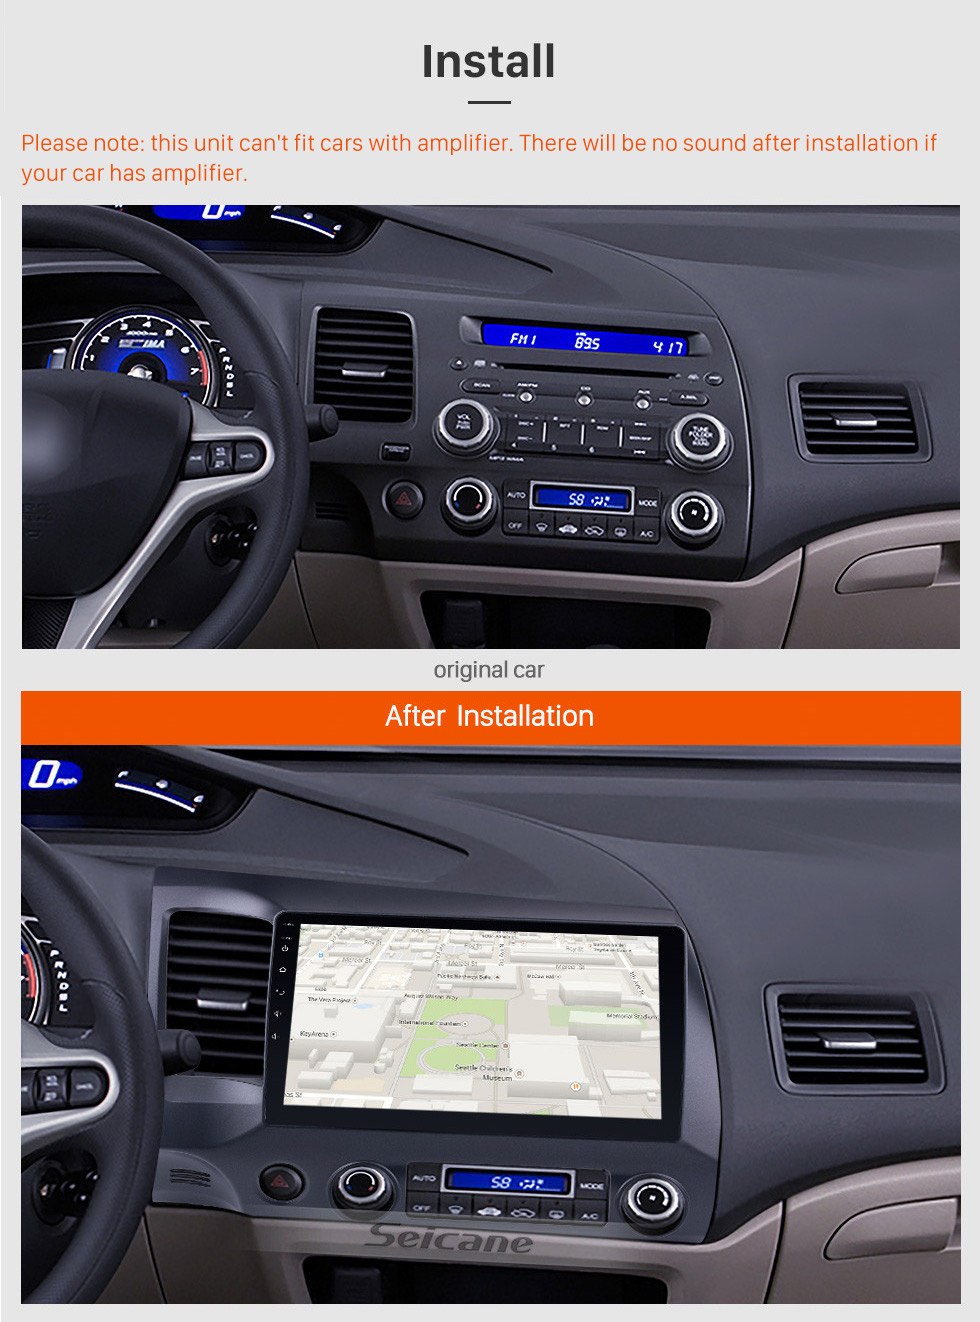 Seicane 10 1 inch Android 7 1/ Android 8 1 Car GPS Navigation Radio Unit  Player for 2006 2007 2008 2009 2010 2011 Honda Civic